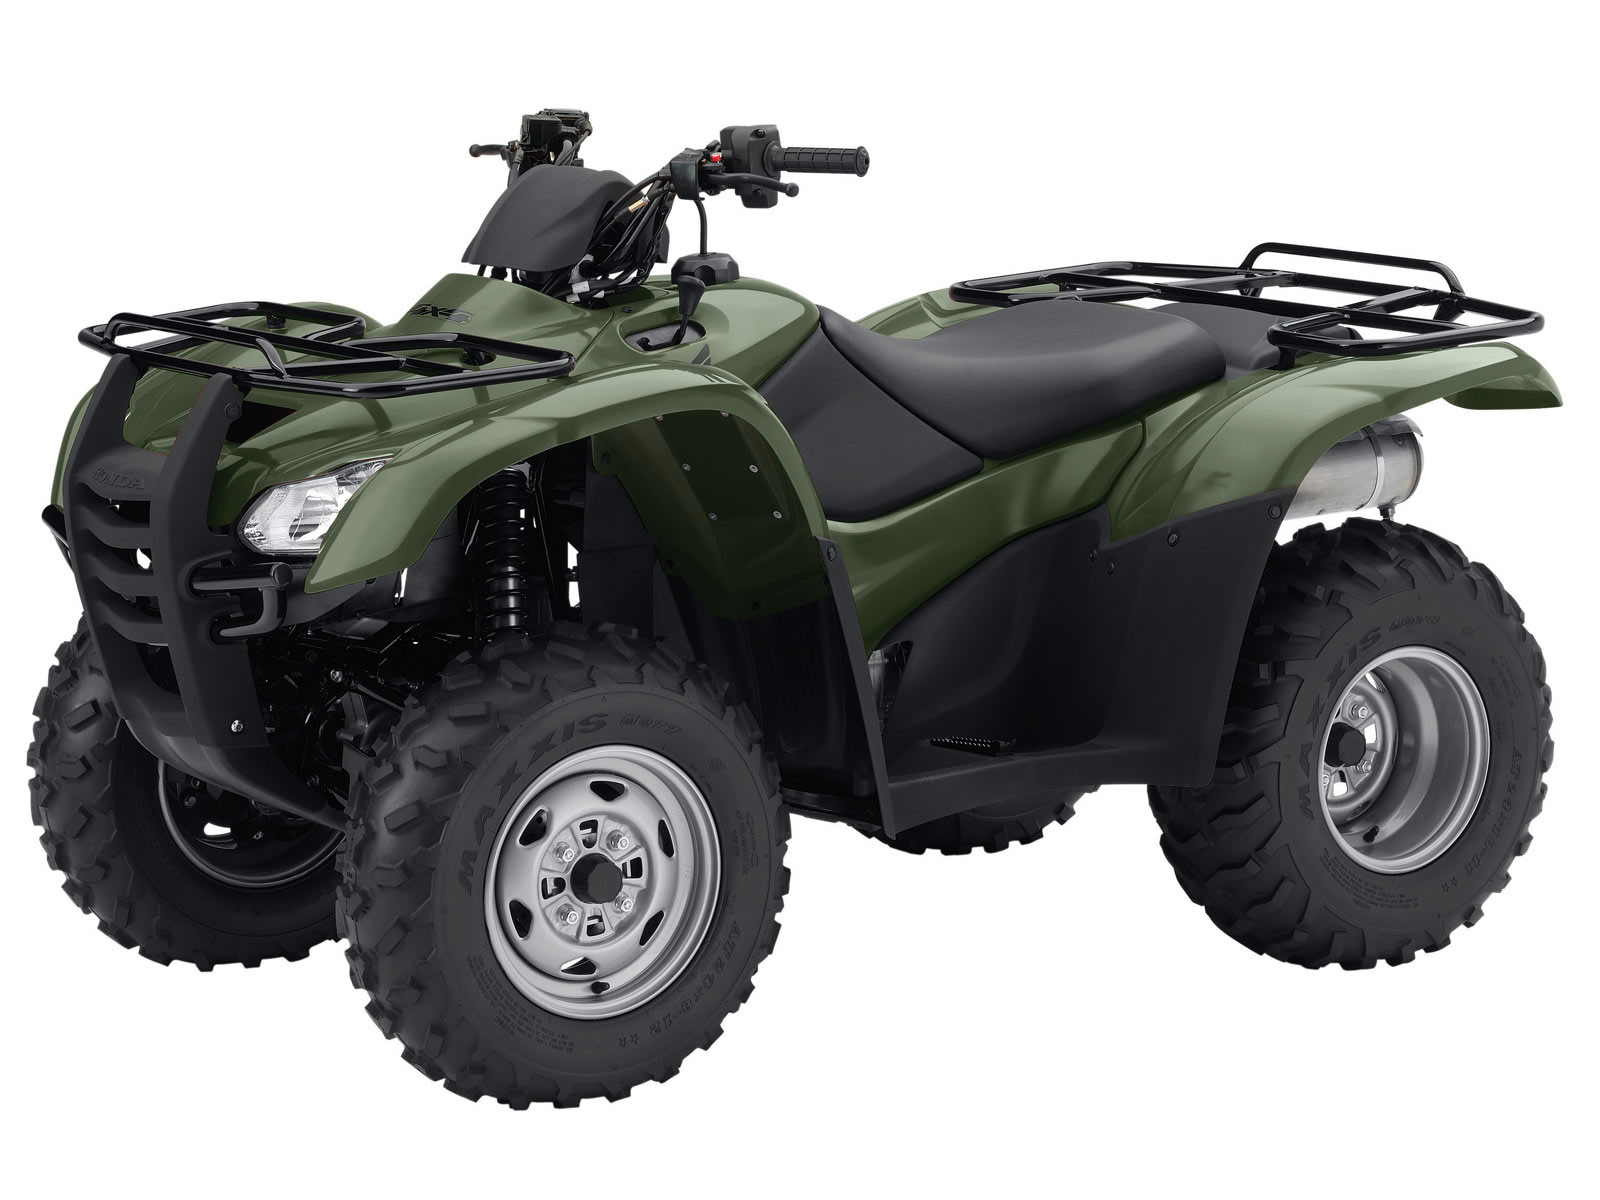 2008 honda fourtrax rancher 4x4 atv pictures specs. Black Bedroom Furniture Sets. Home Design Ideas